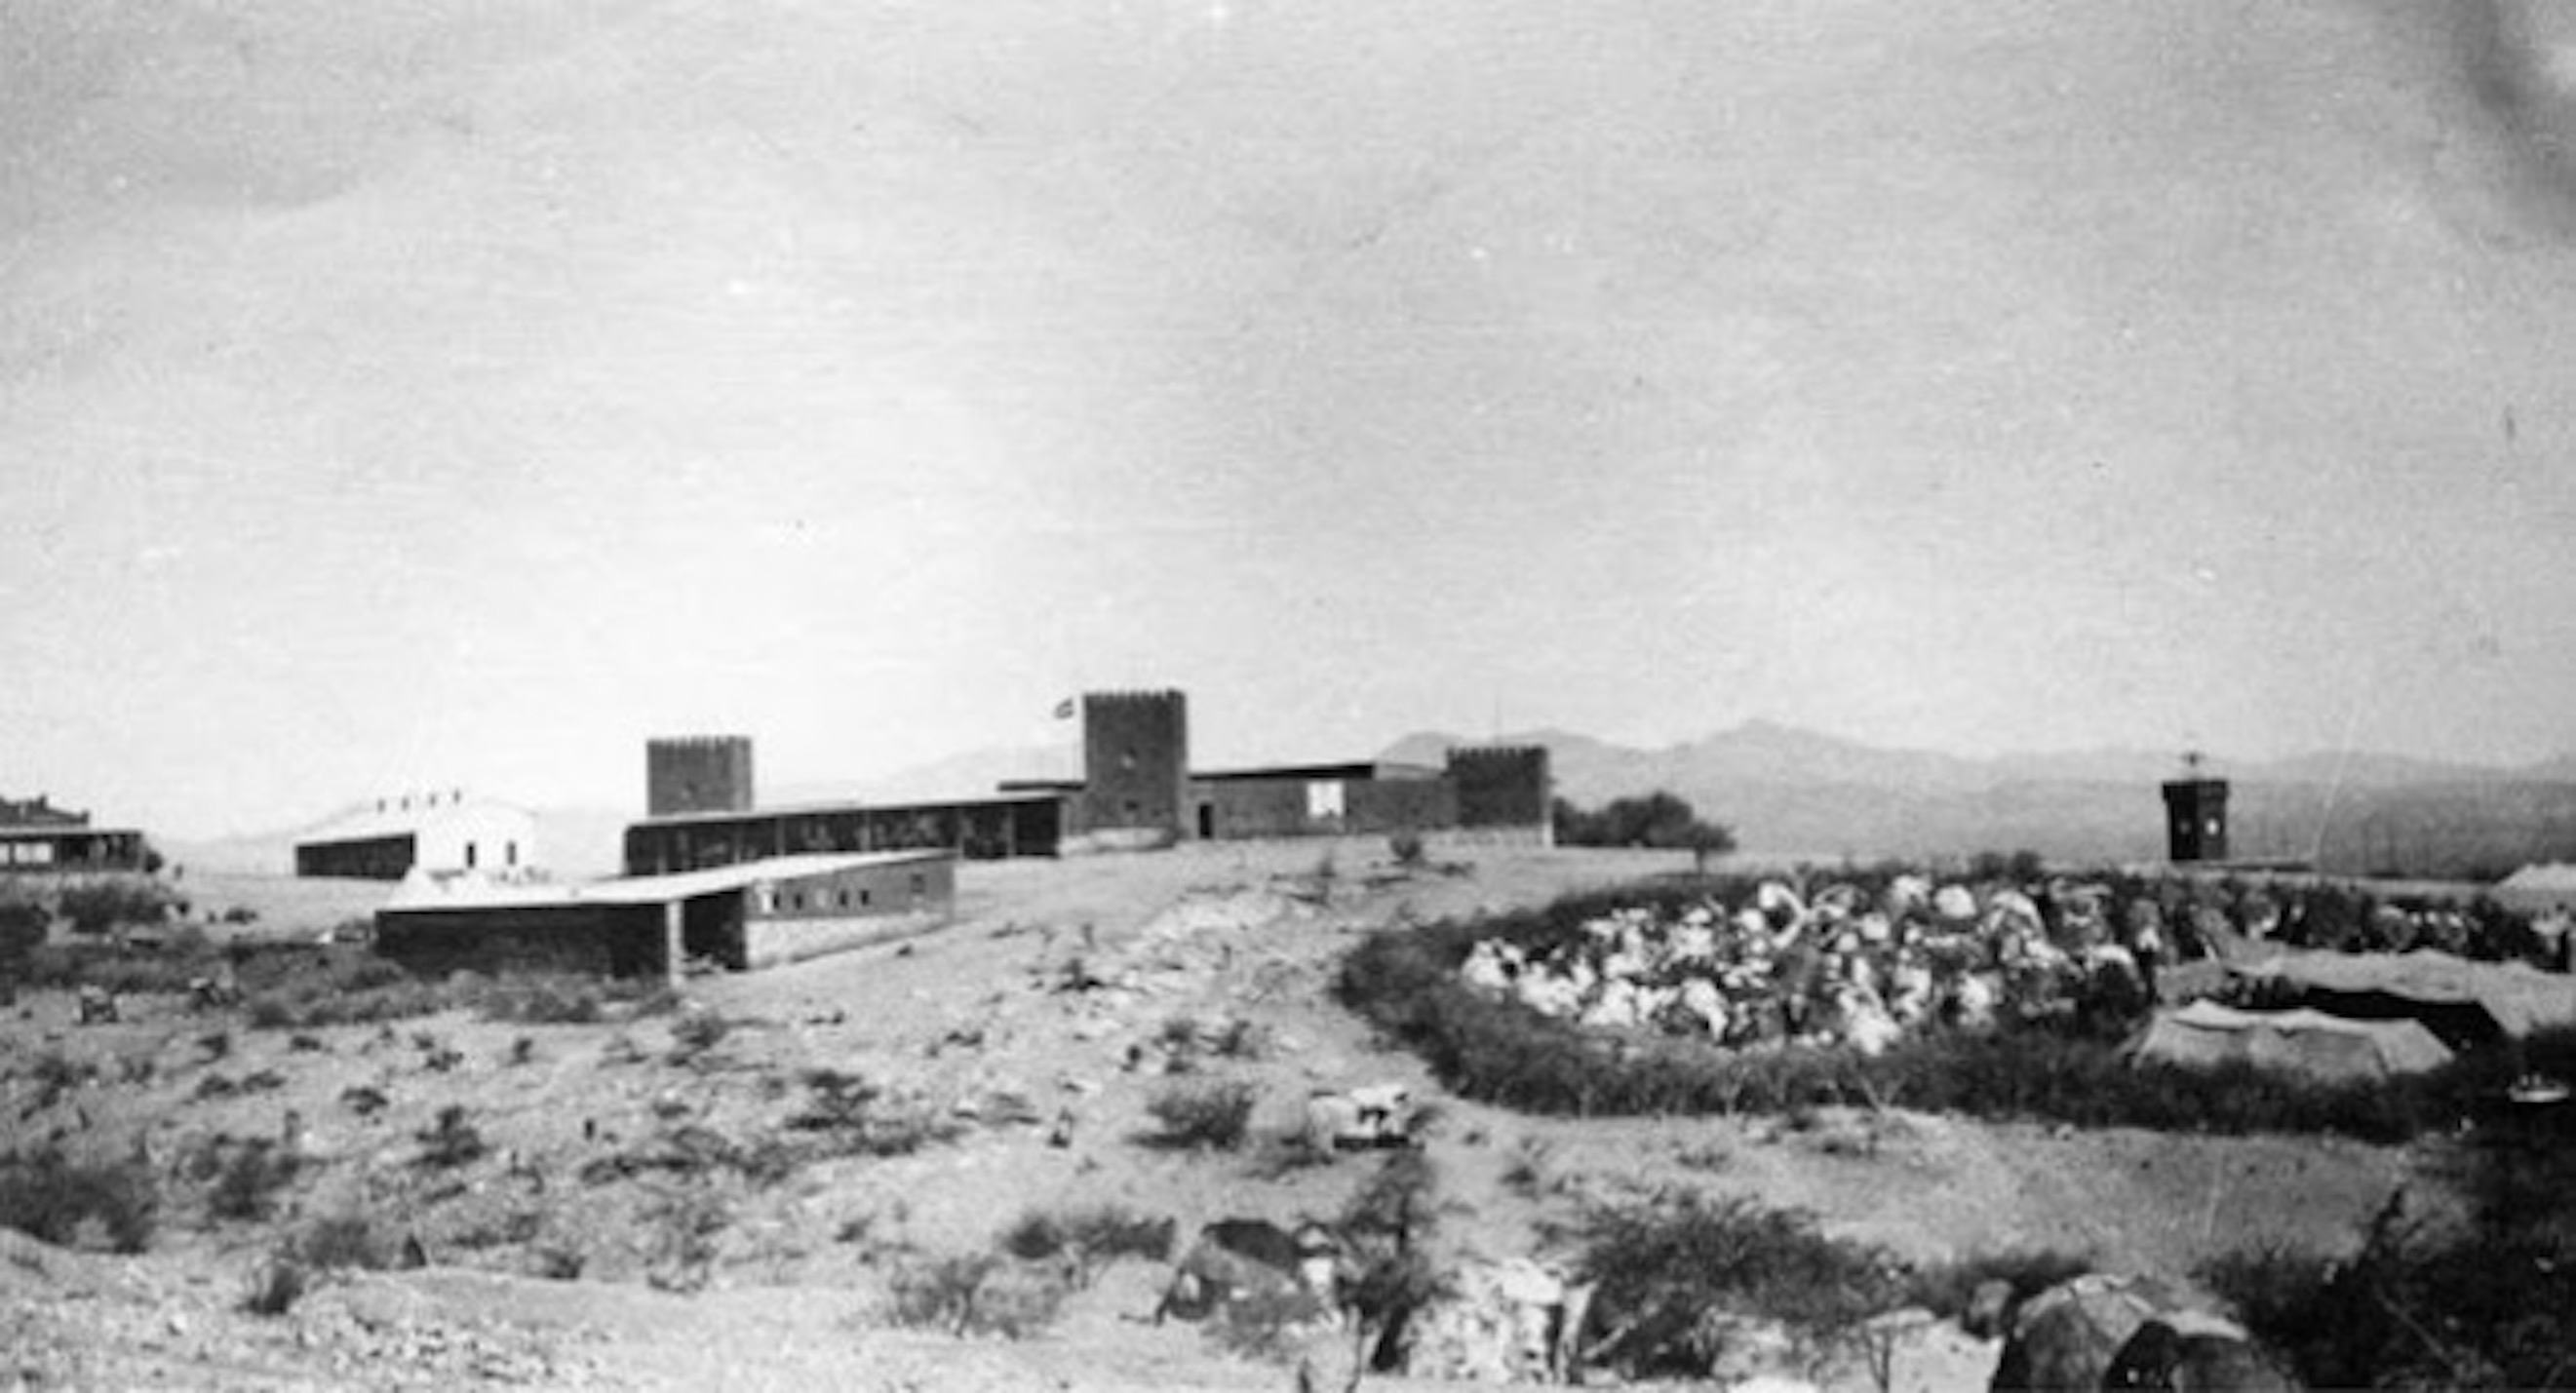 Photograph of a German military fort in Namibia.